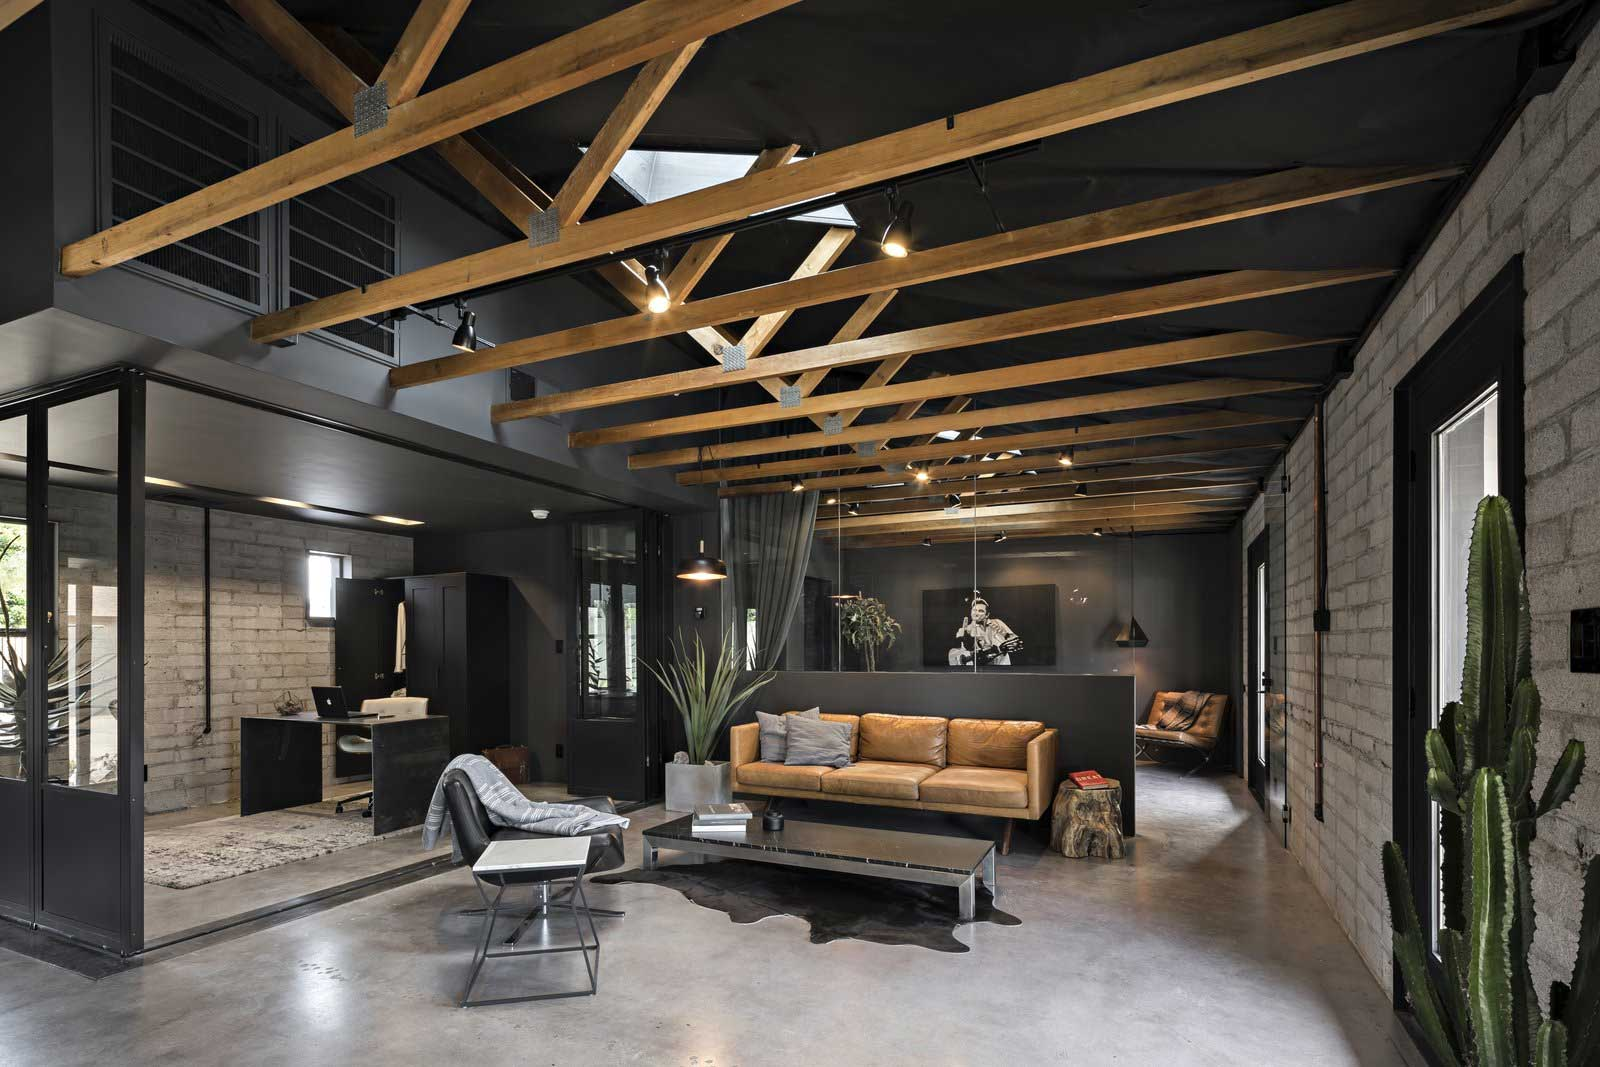 Traum-Loft: The Black House The-Black-House-Airbnb_03